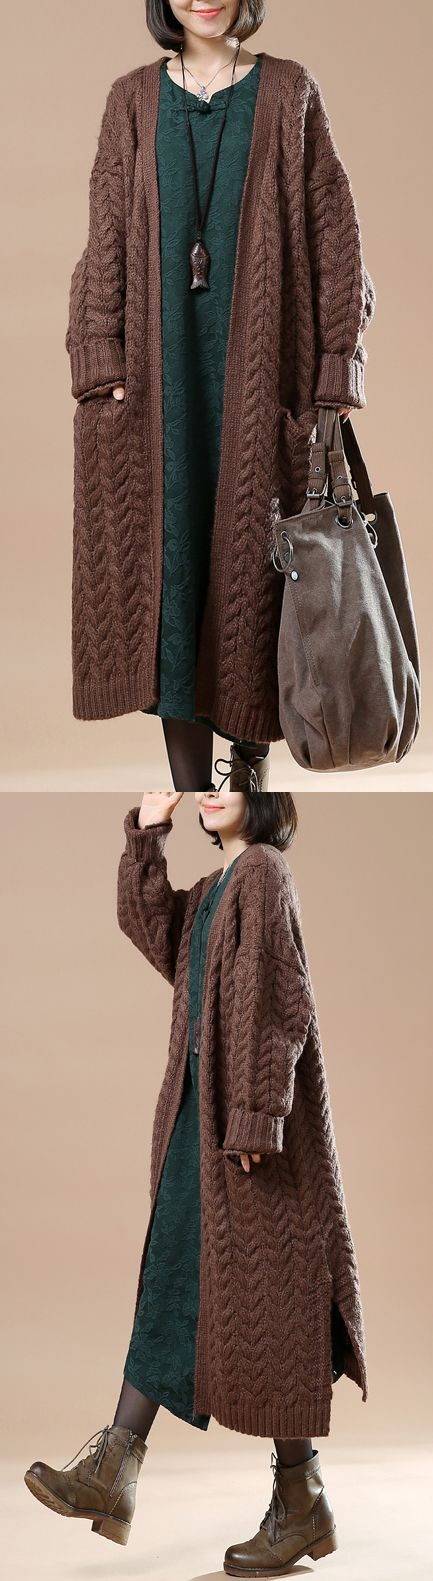 Chocolate cable knit women cardigans plus size sweater coats